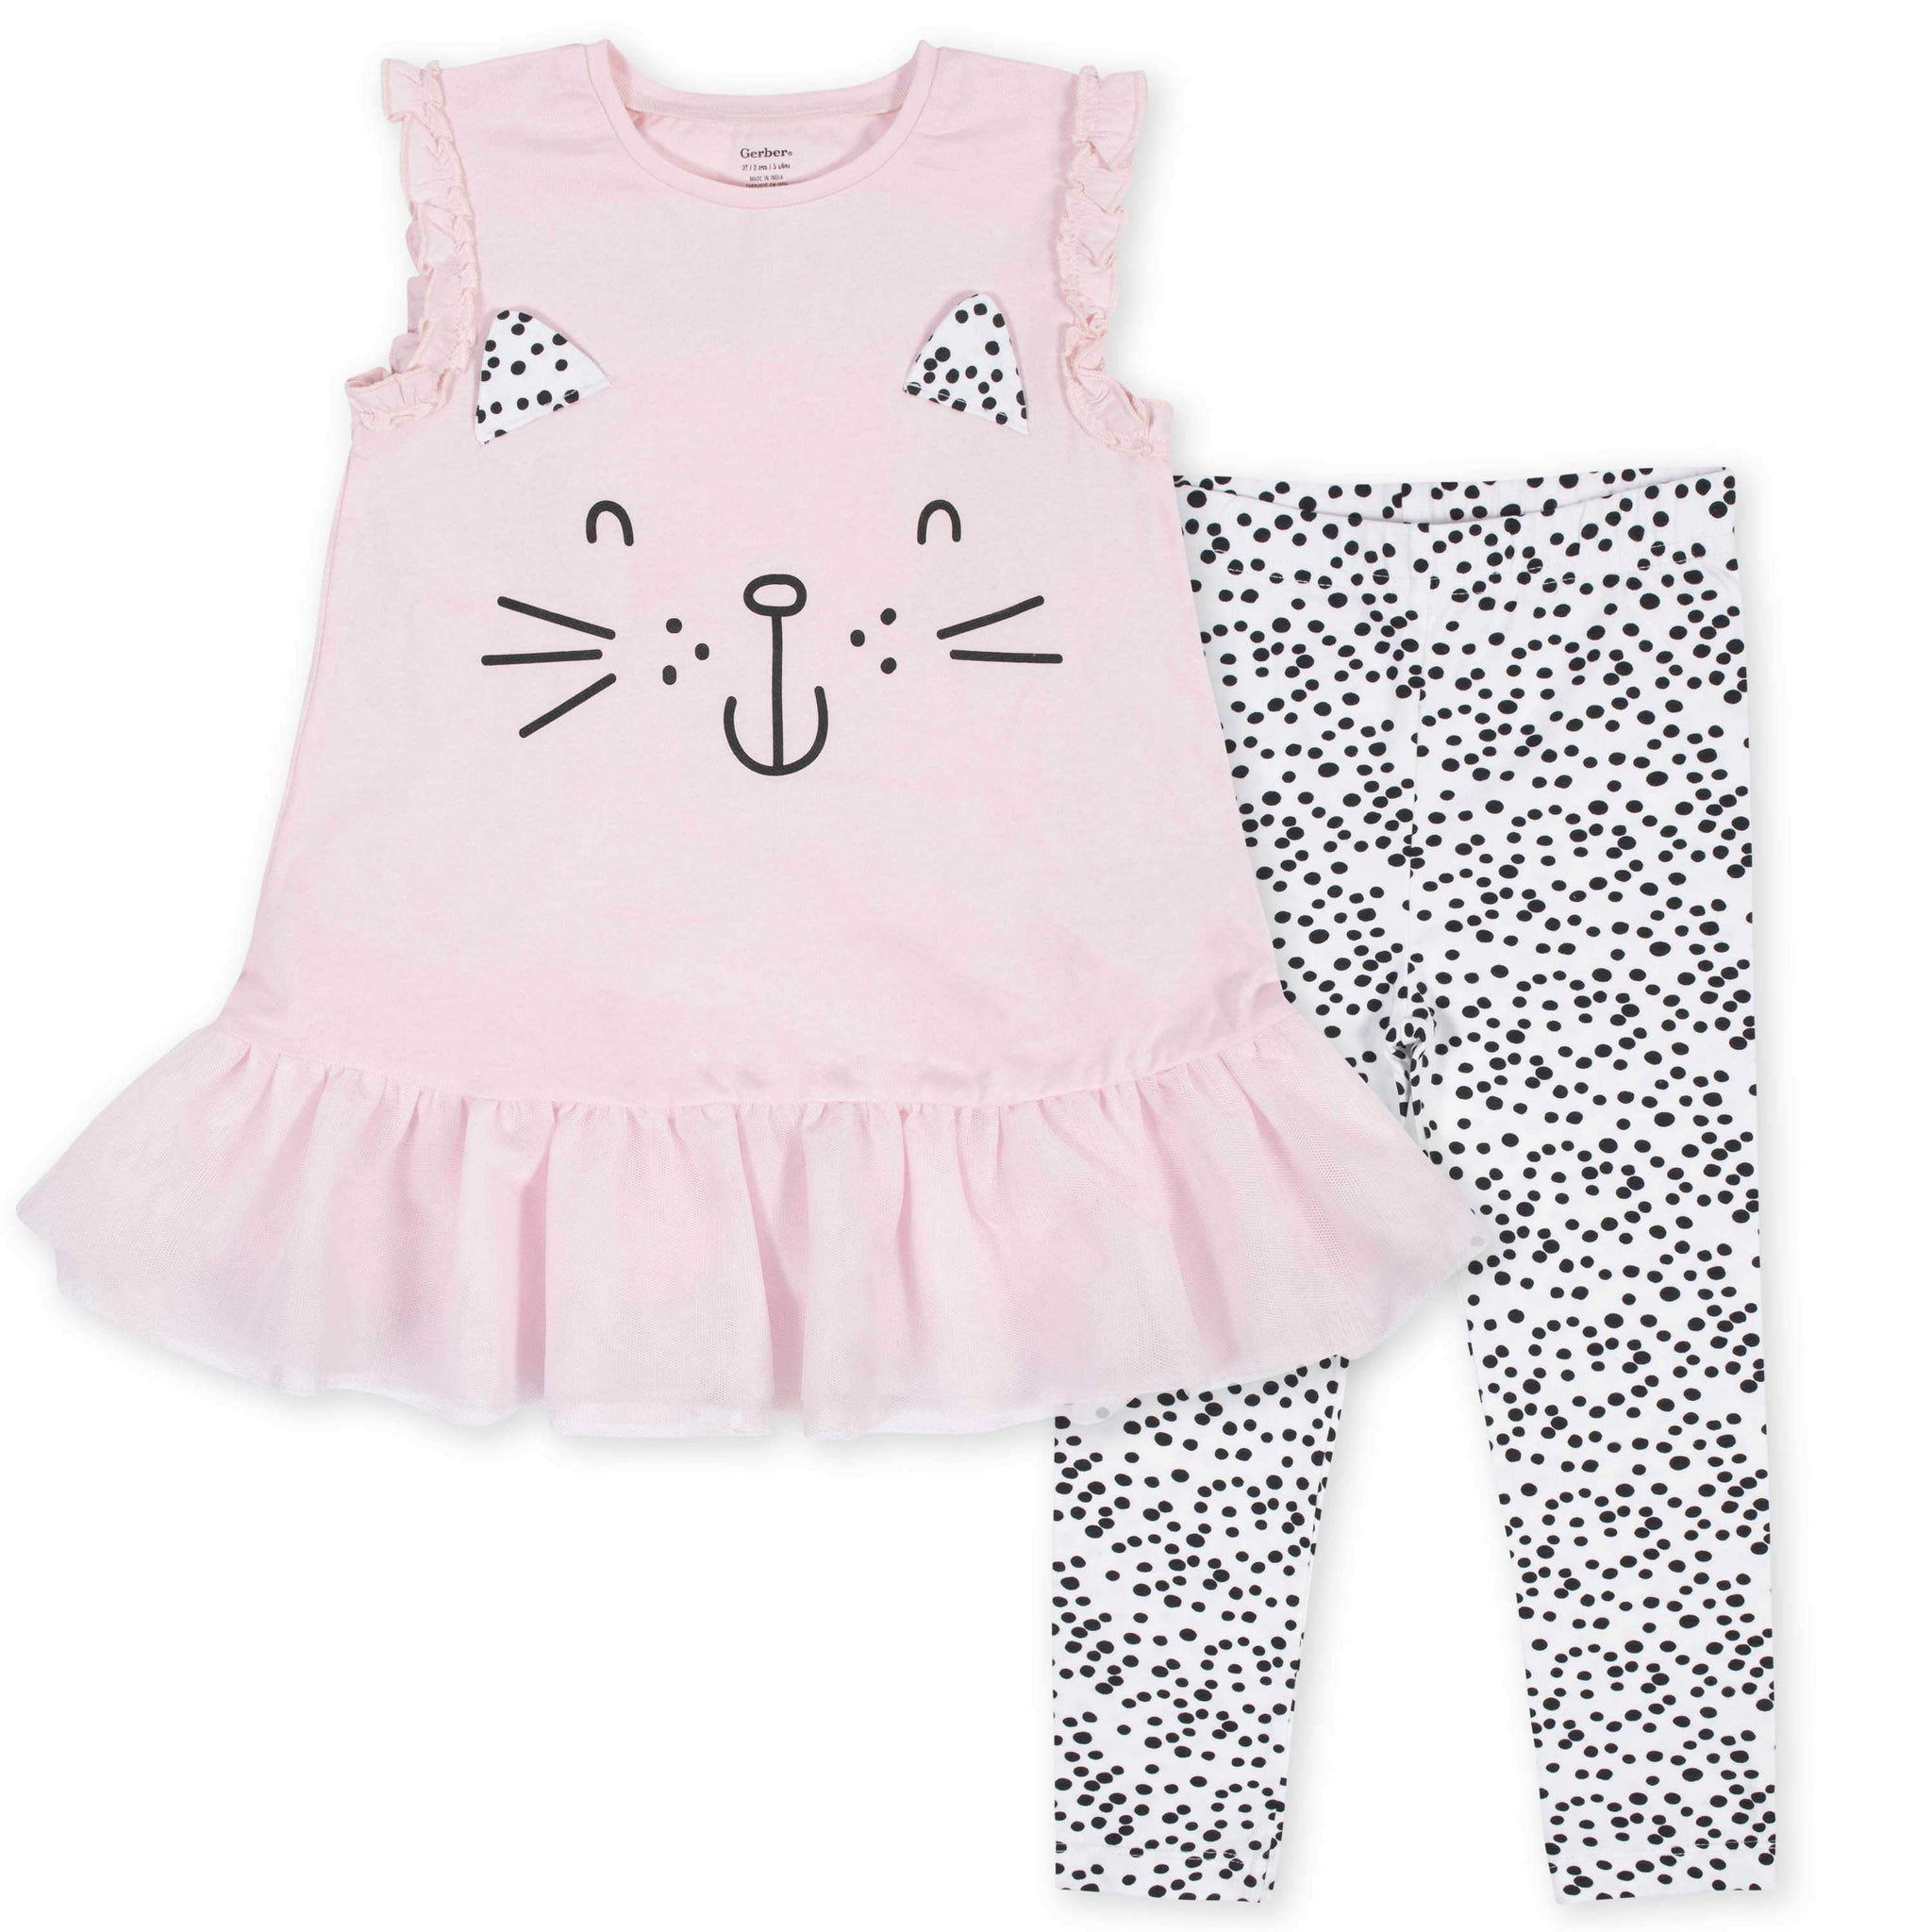 2-Piece Toddler Girls Kitty Ruffled Tunic and Legging Set